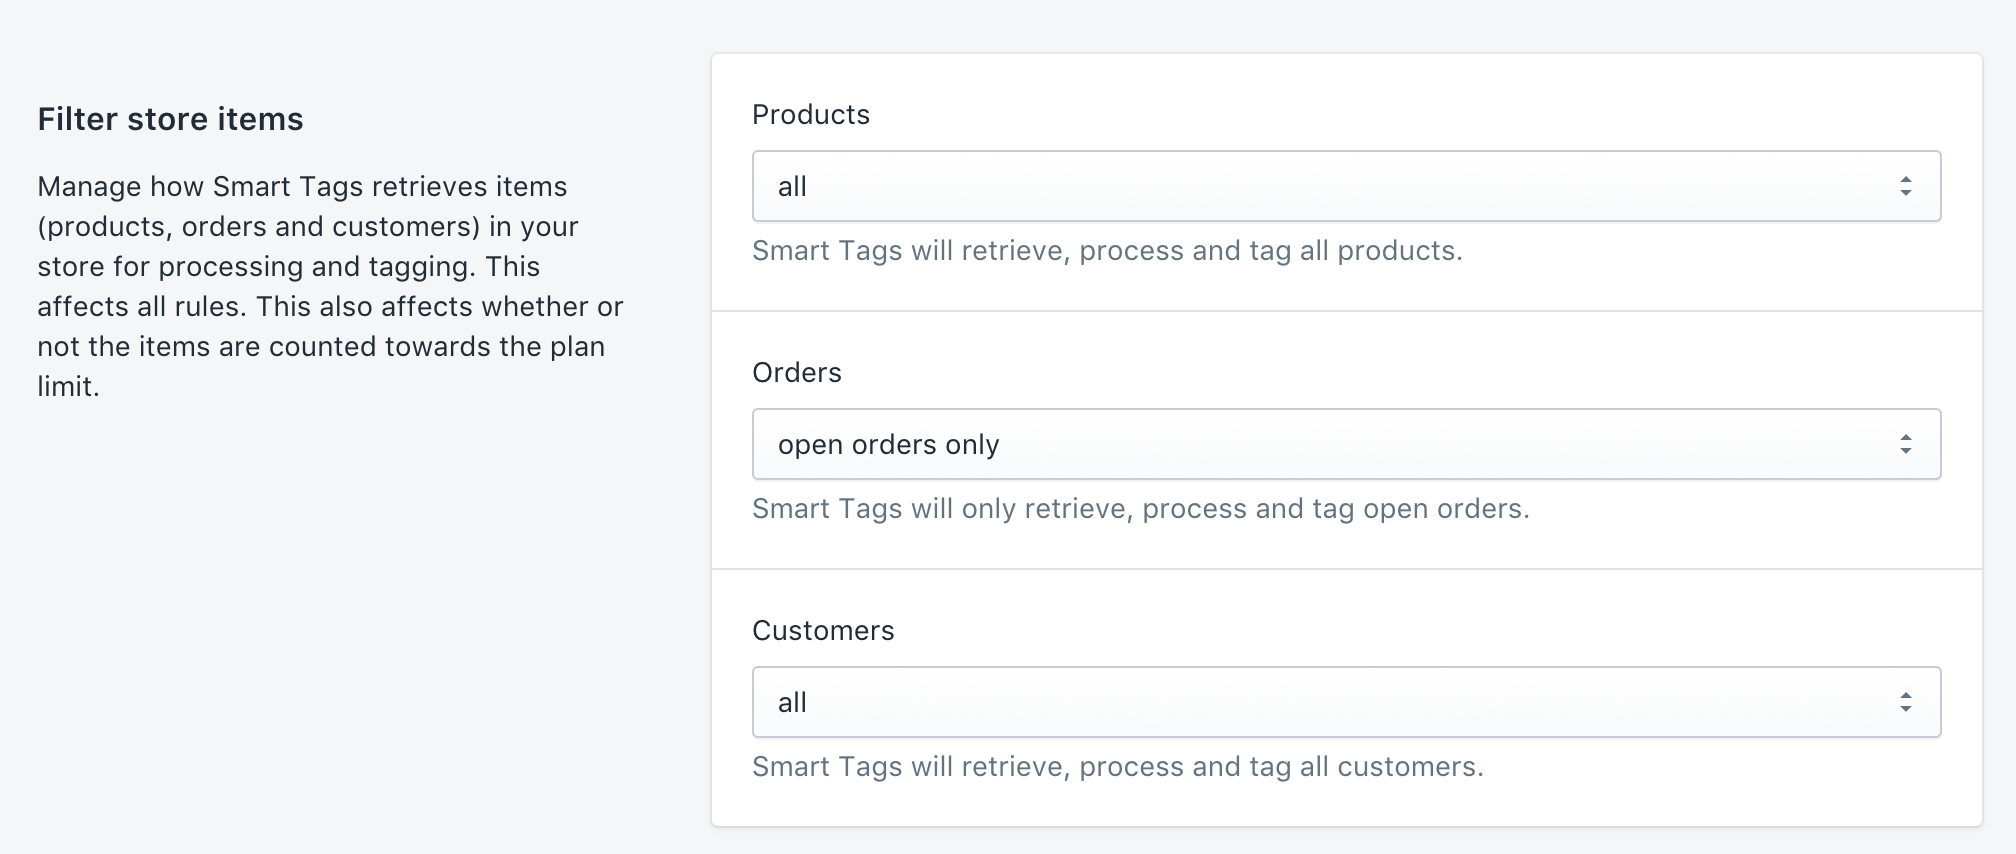 Filter which items to retrieve, process and tag